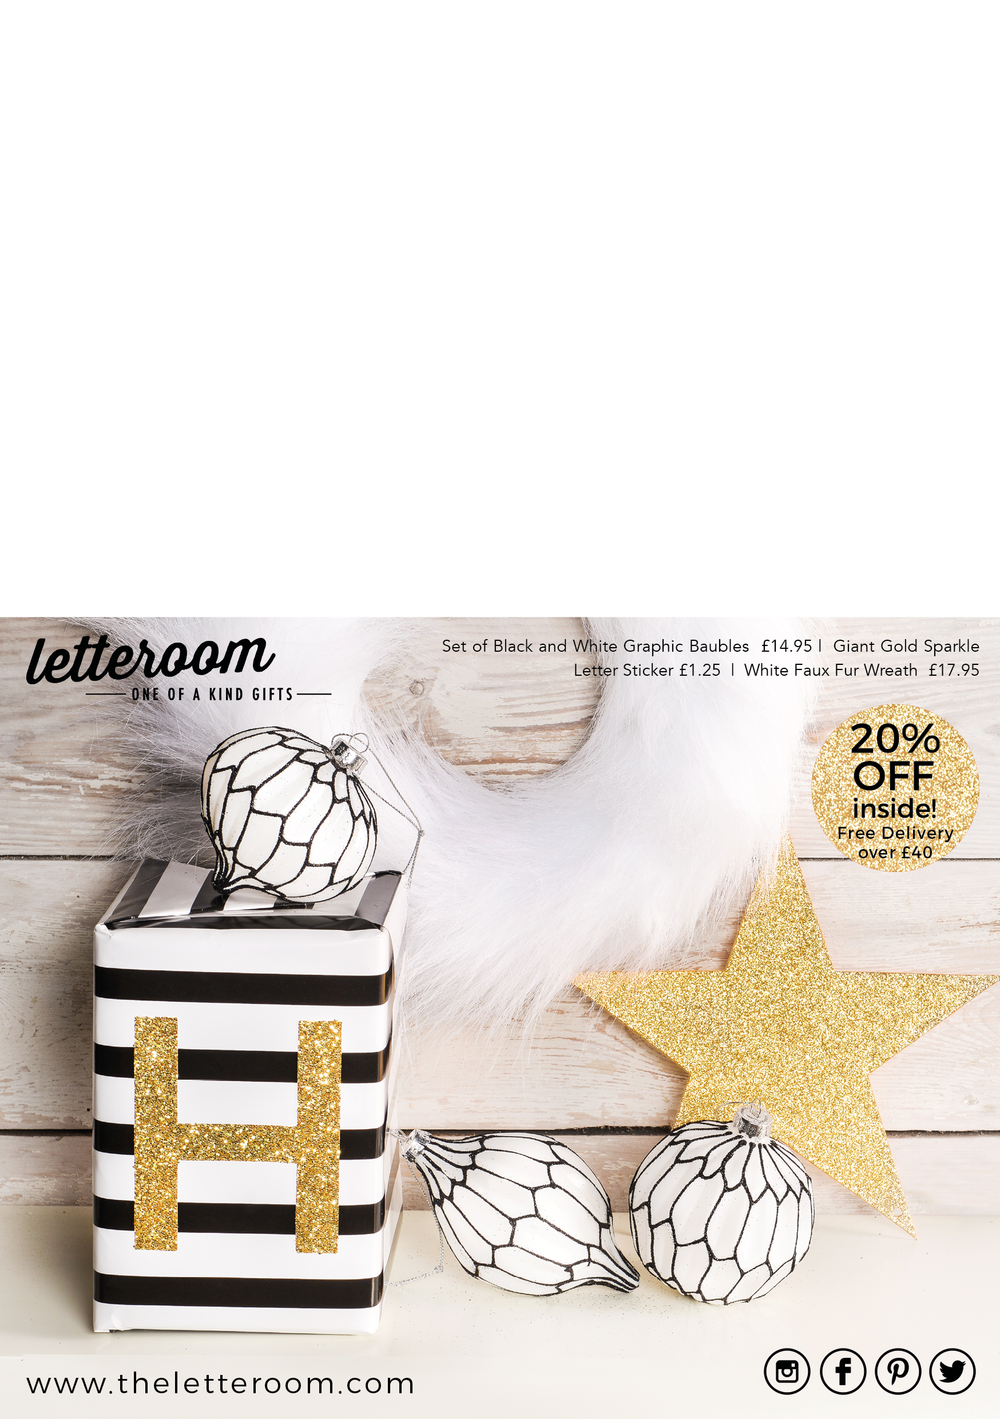 Letteroom_Xmas_Catalogue_2016_28th_Oct8.png